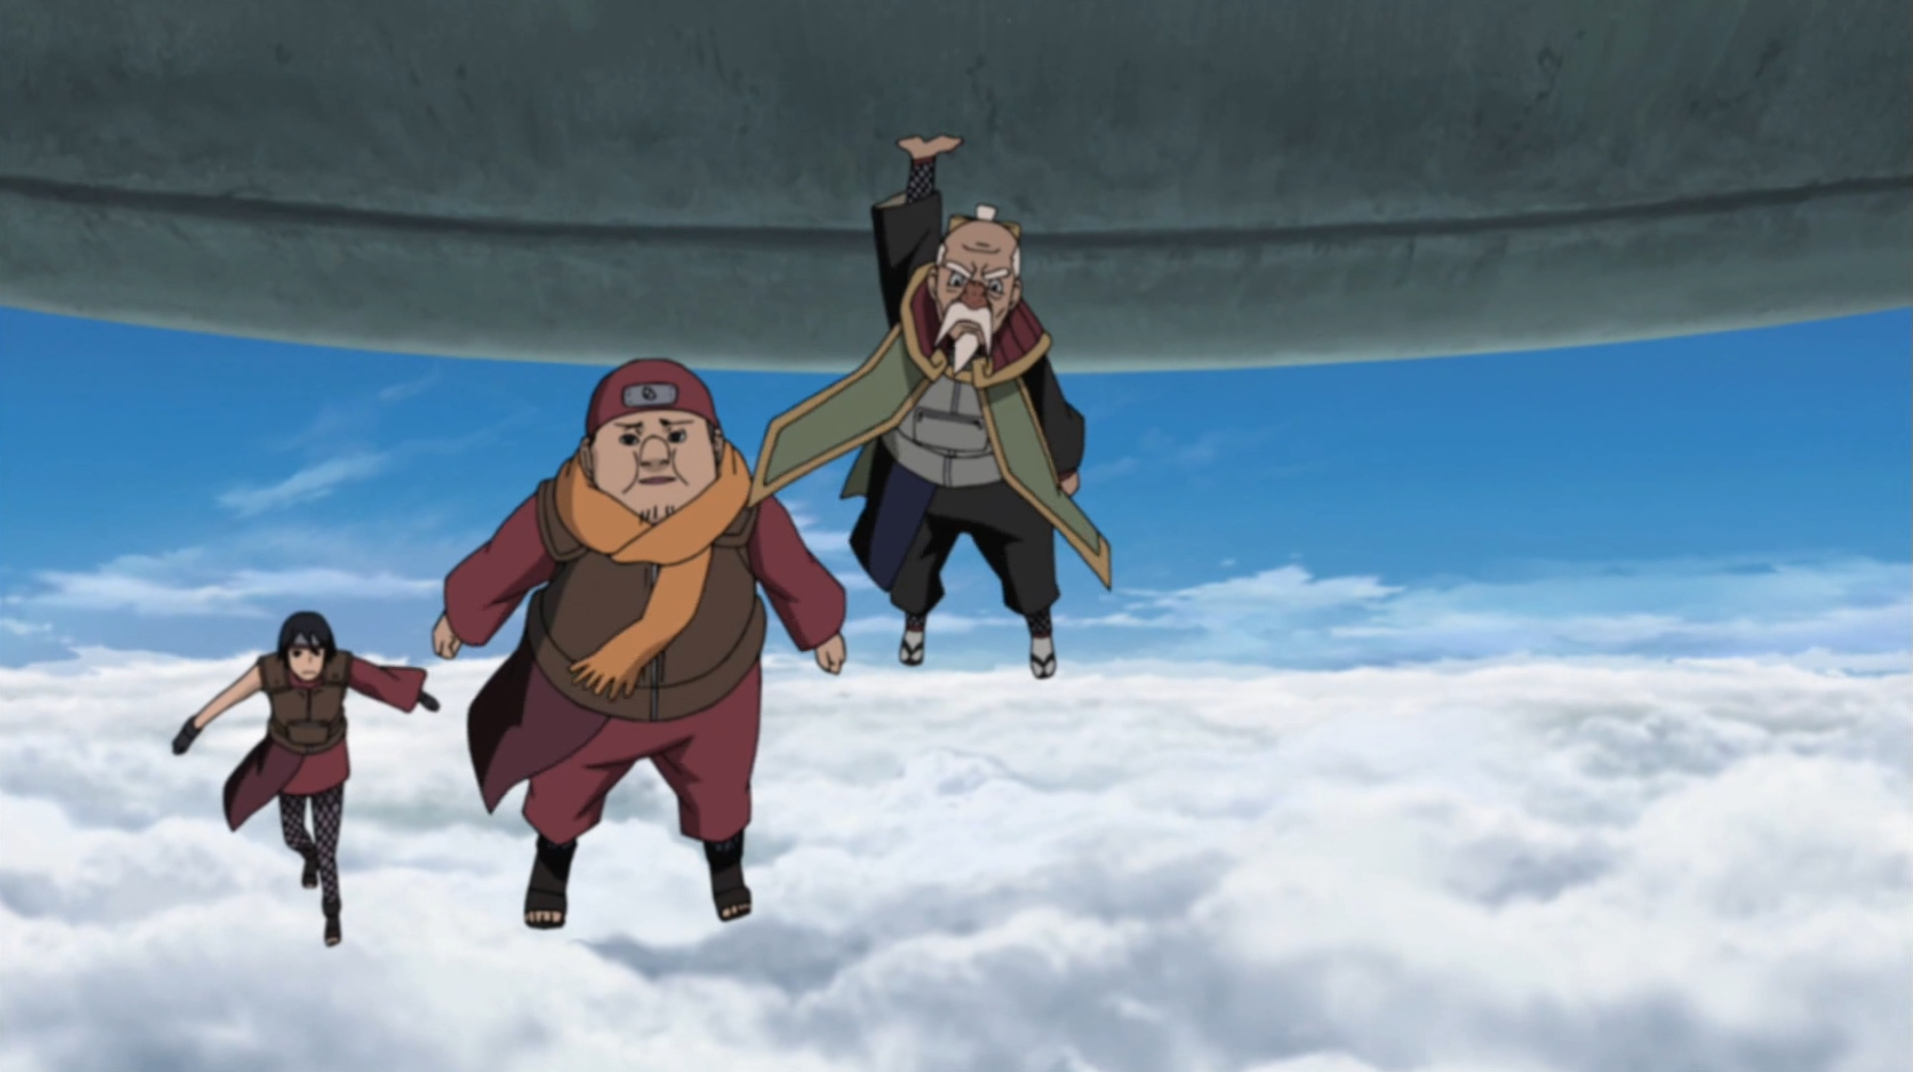 https://vignette.wikia.nocookie.net/naruto/images/e/ee/Flight_Technique.png